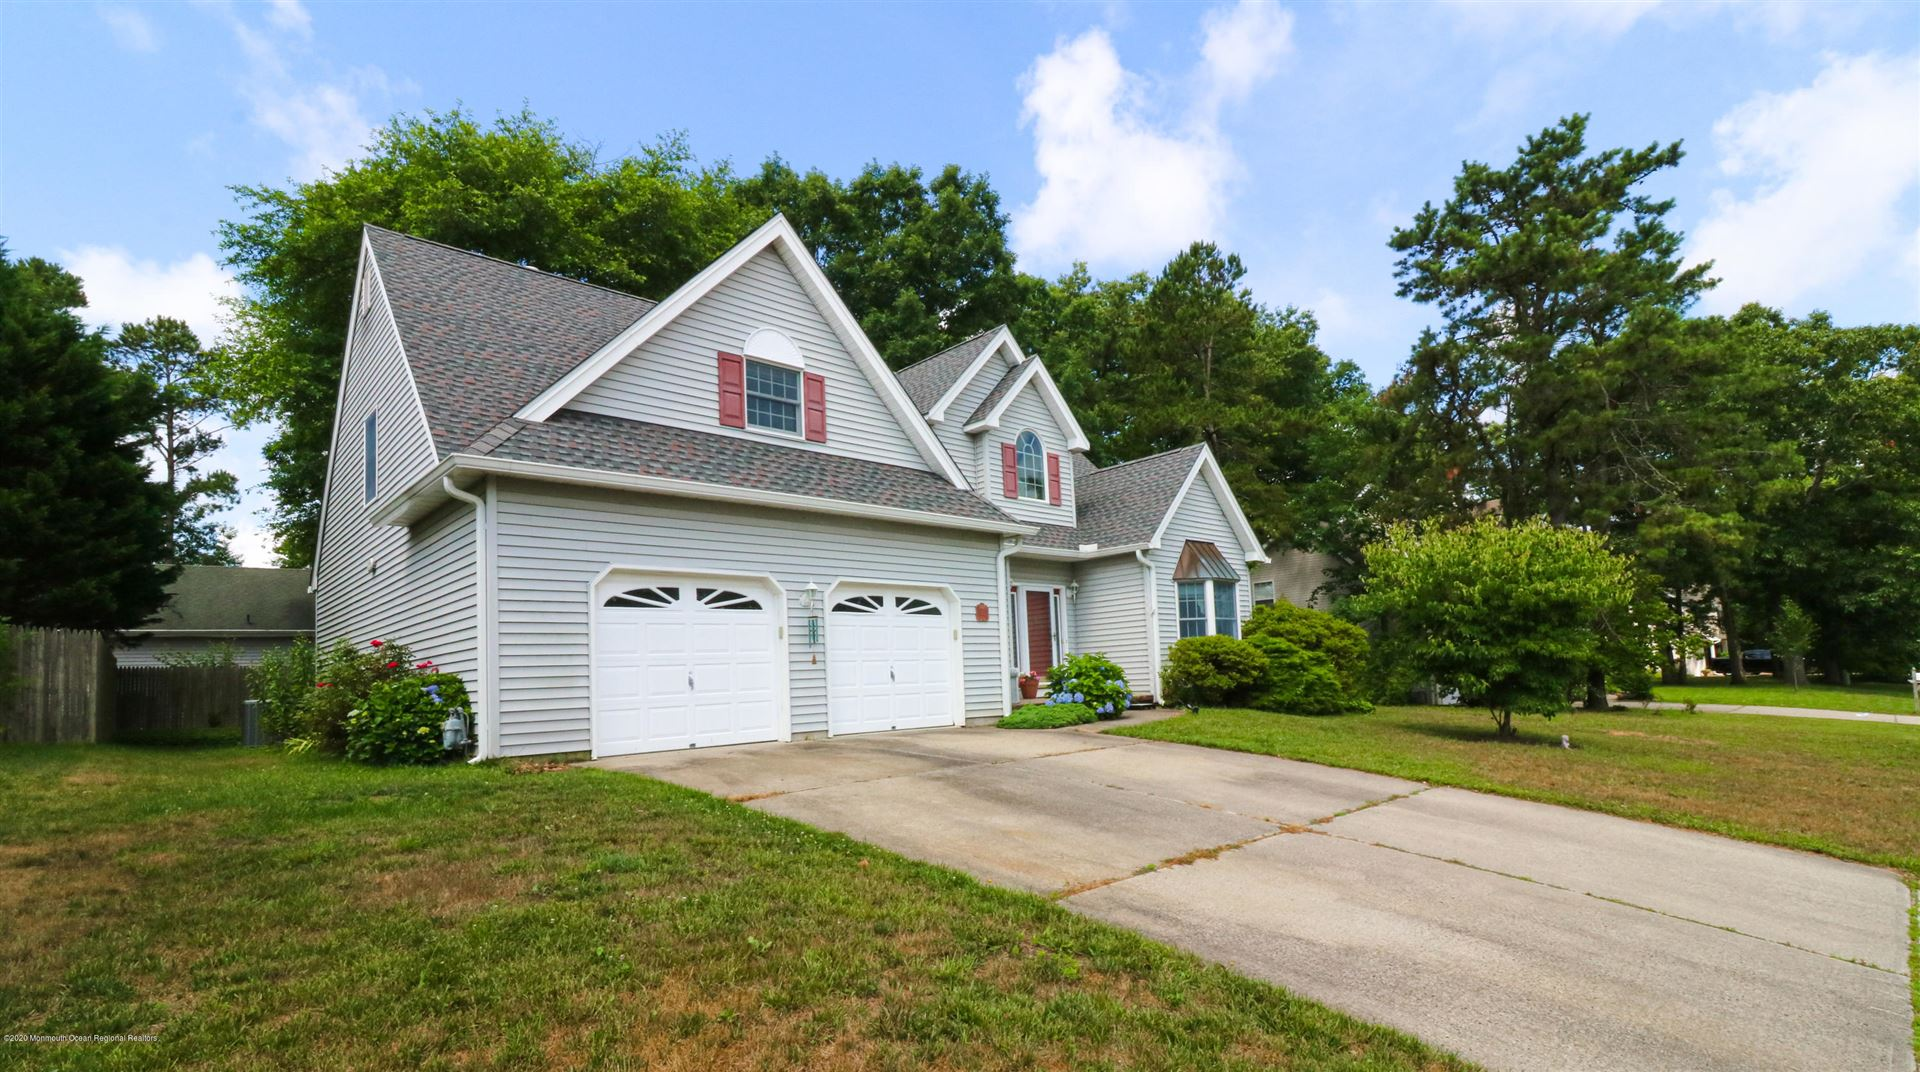 362 Deer Lake Court, Manahawkin, NJ 08050 - #: 22023153